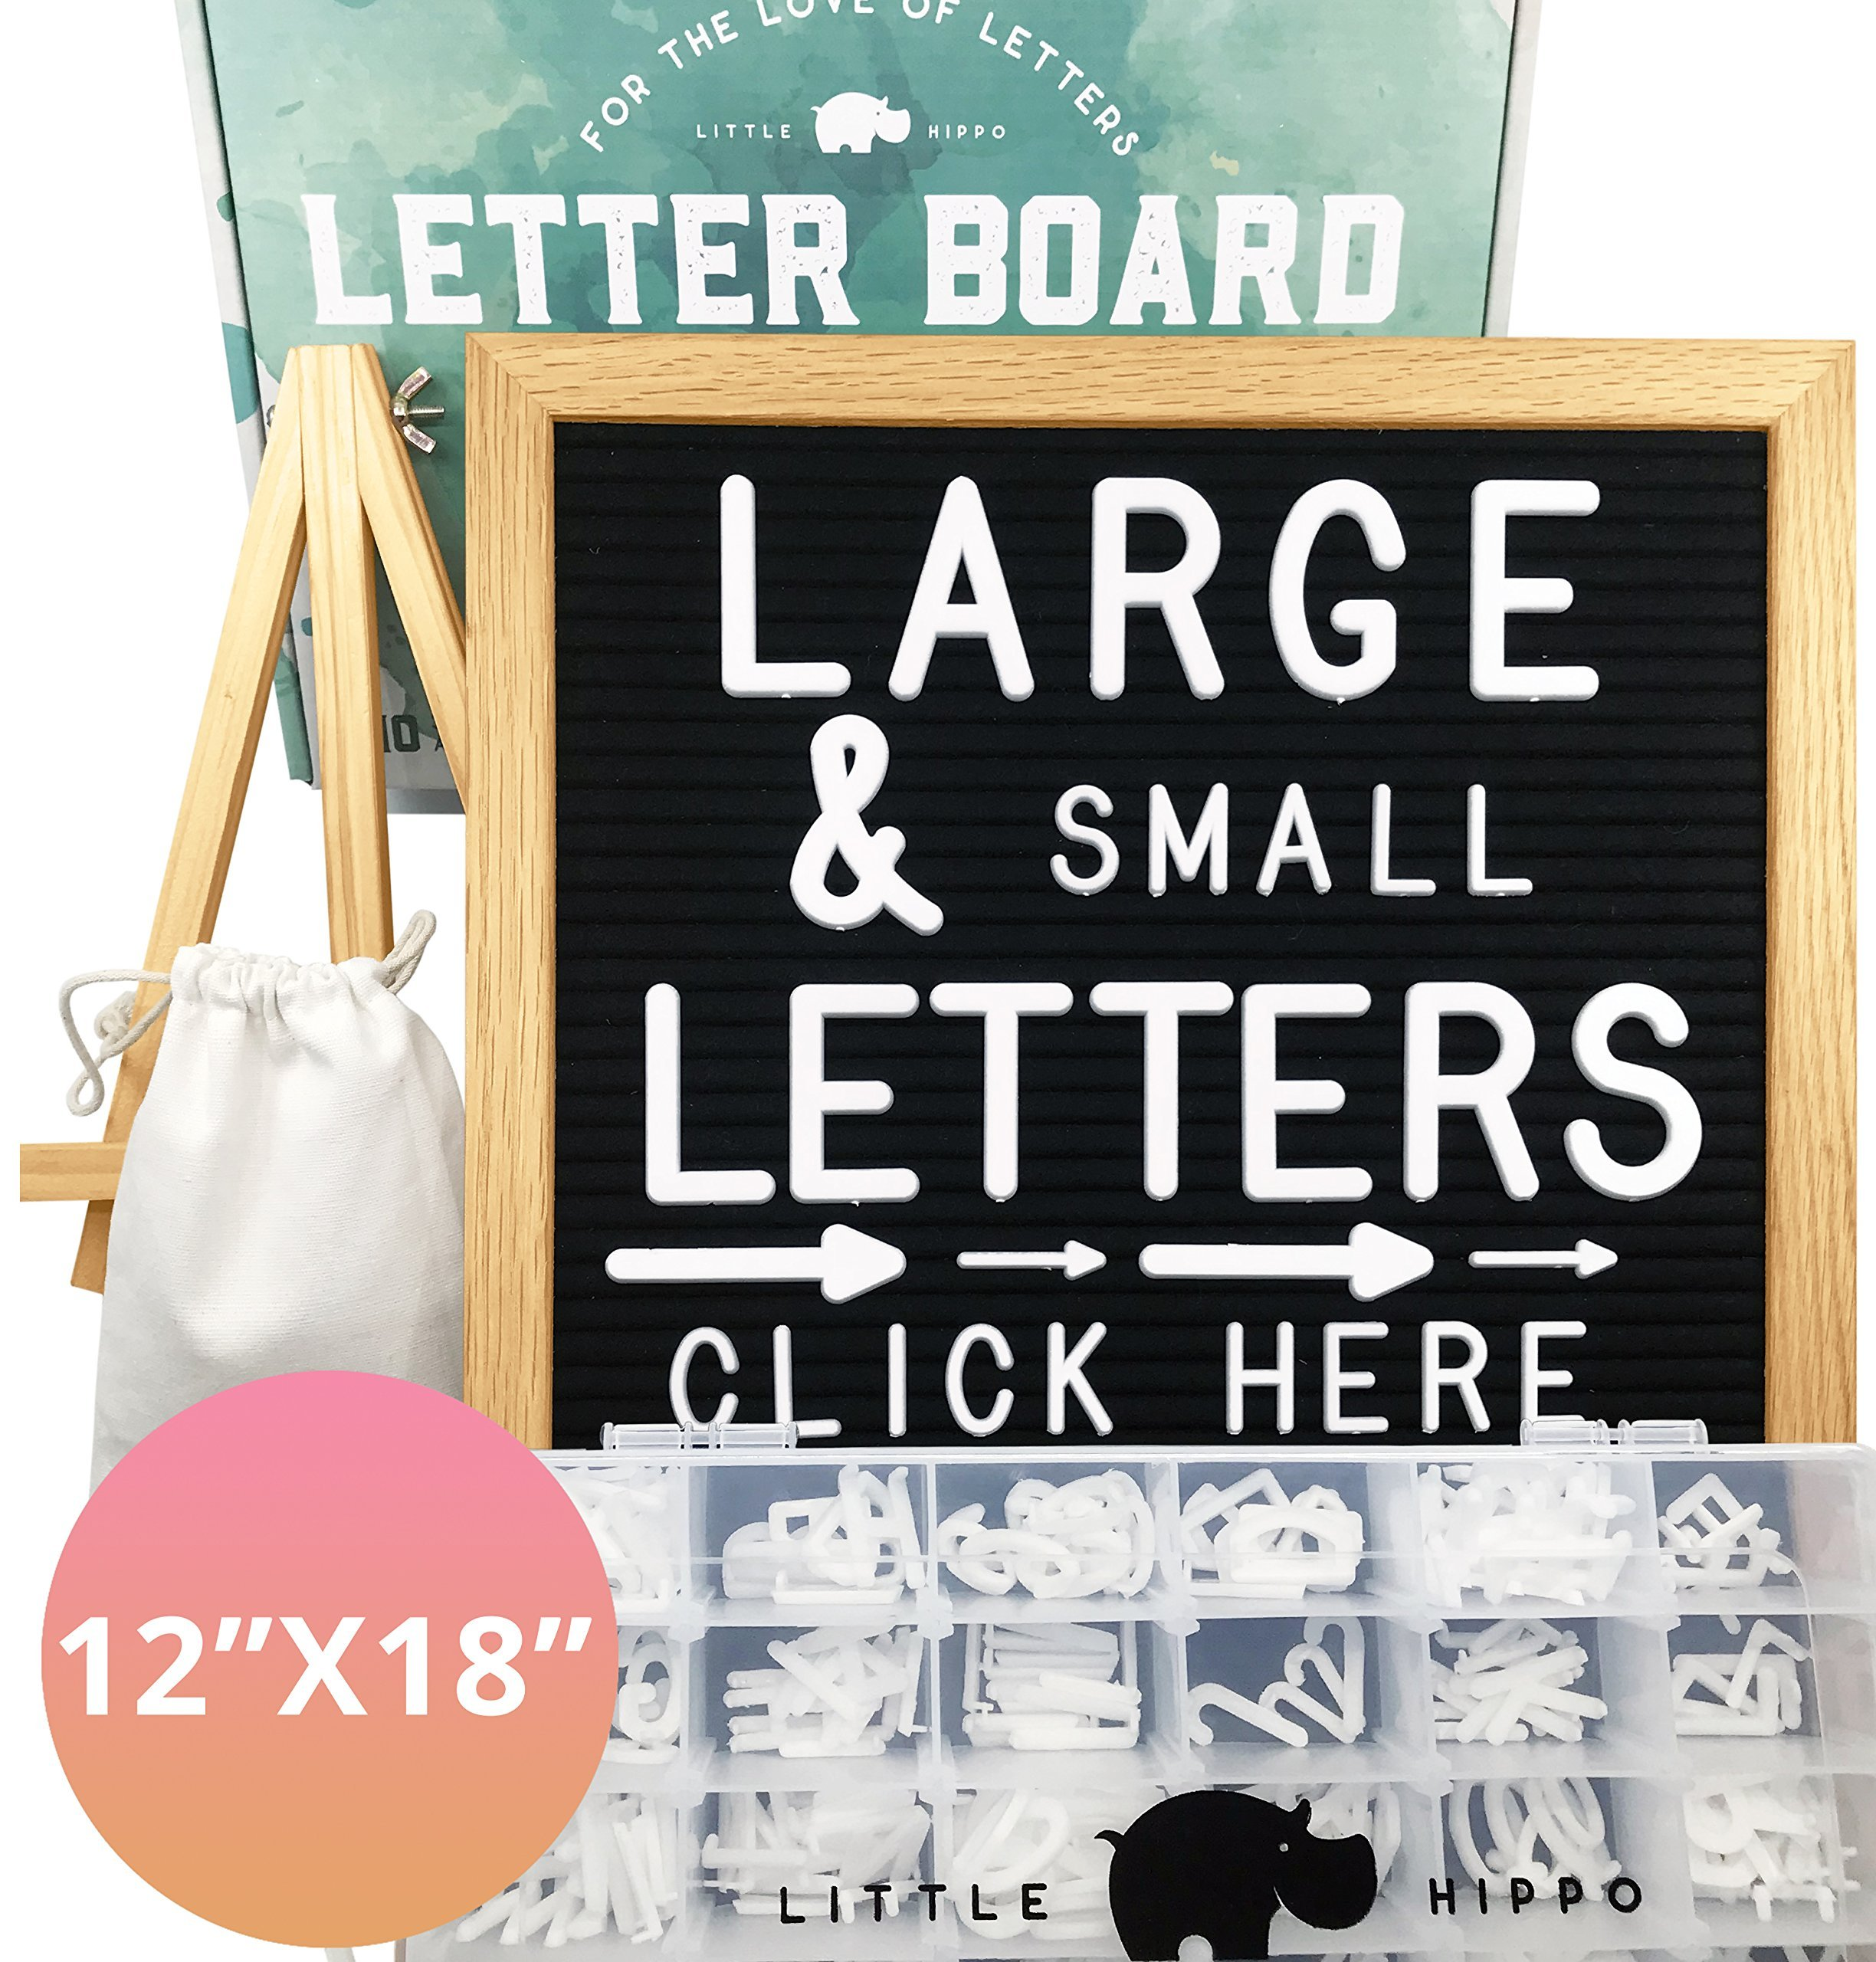 Letter Board 12x18 | +690 PRECUT Letters +Stand +Sorting Tray | (Black) Letter Board with Letters, Letters Board, Letter Boards, Felt Letter Boards, letterboard, Word Board, Message Board, Letter Sign